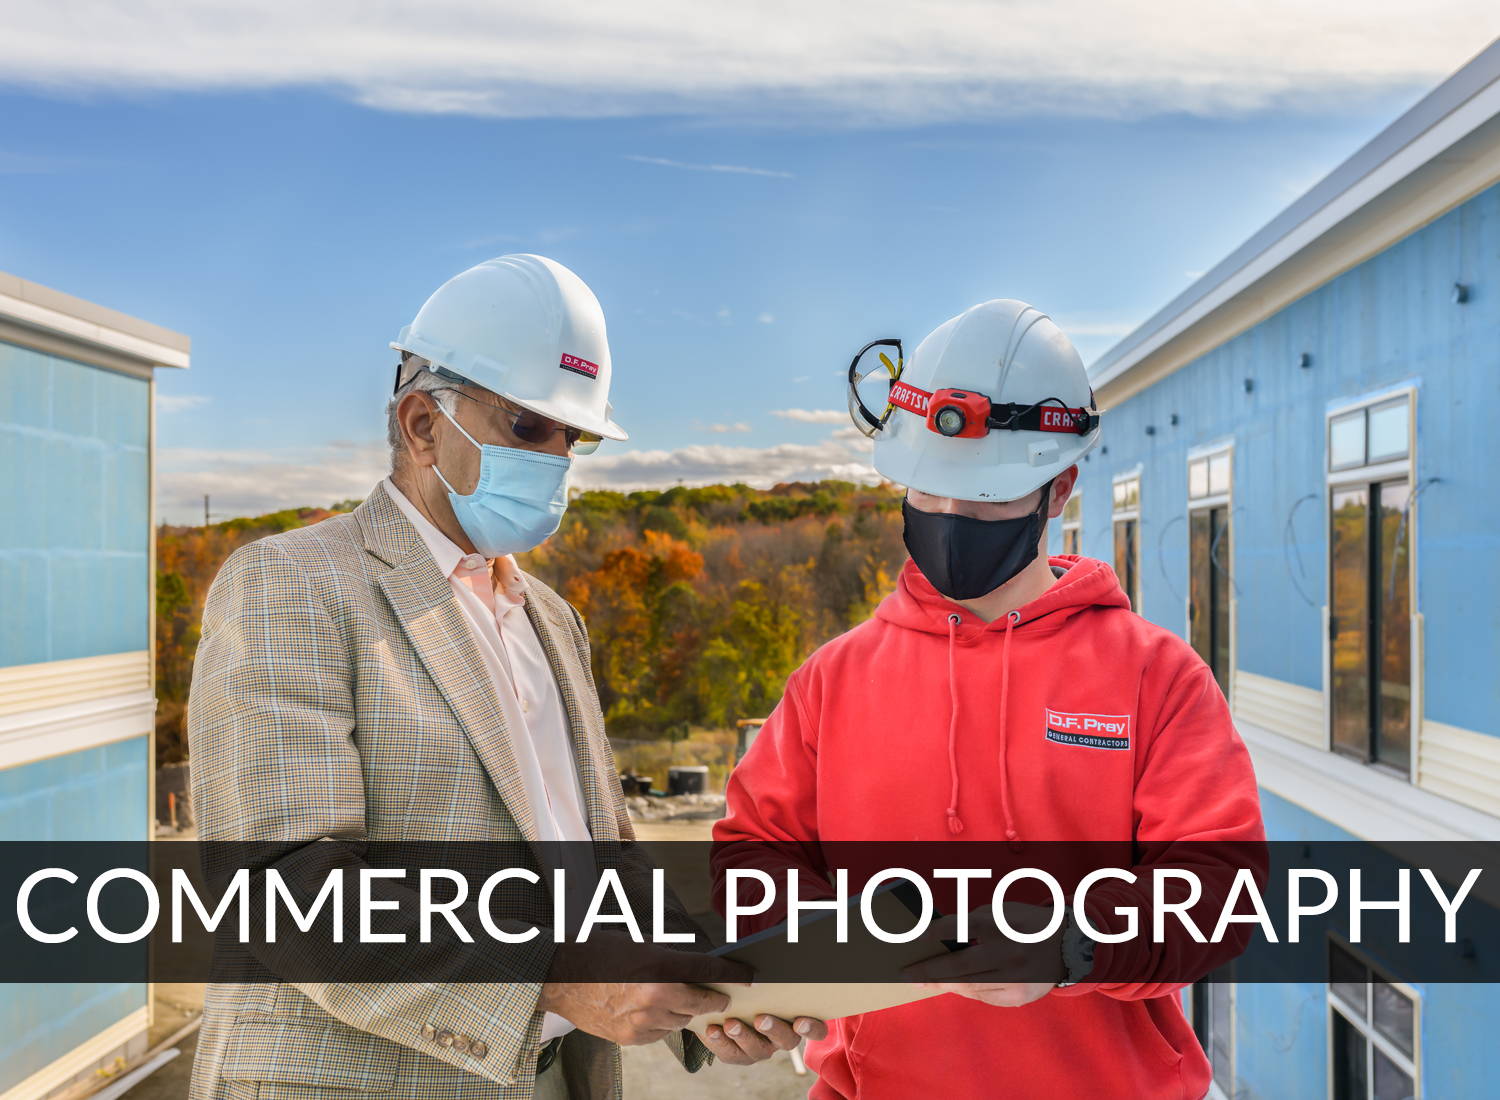 rich epstein ri commercial photography